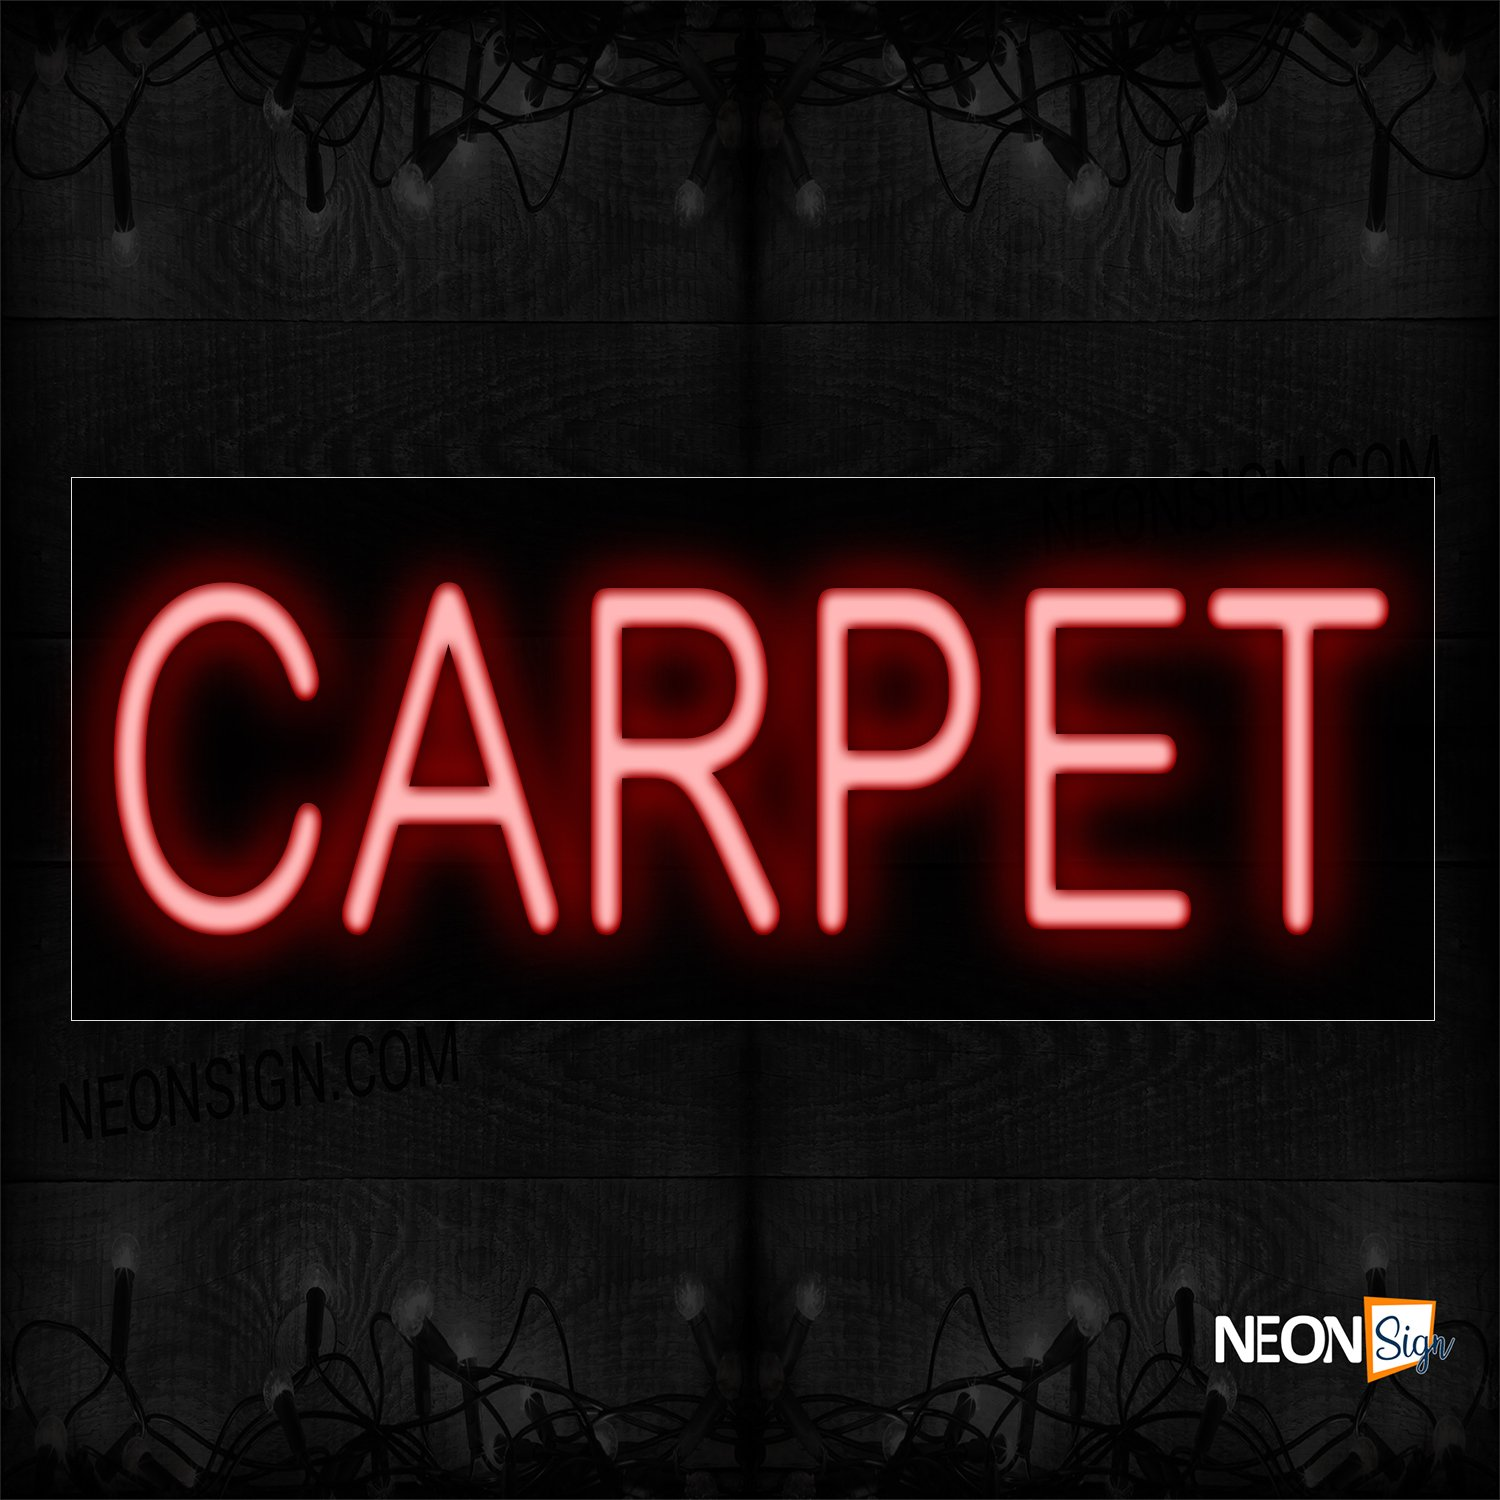 Image of 12033 Carpet Neon Sign_10x24 Black Backing